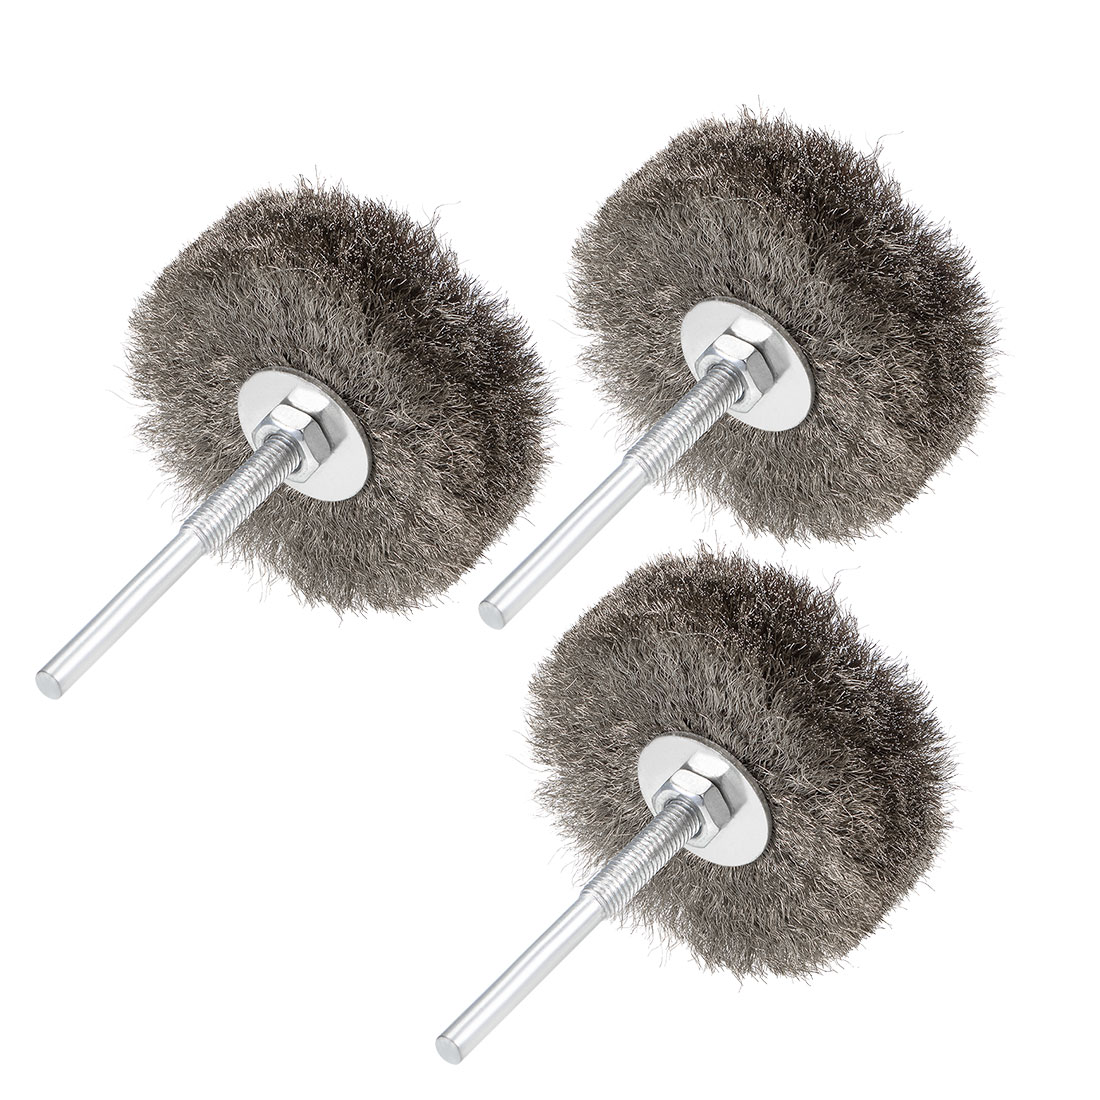 80mm Wire Wheel Brush Bench Stainless Steel Crimped Wire w 1/4-Inch Shank 3 Pcs